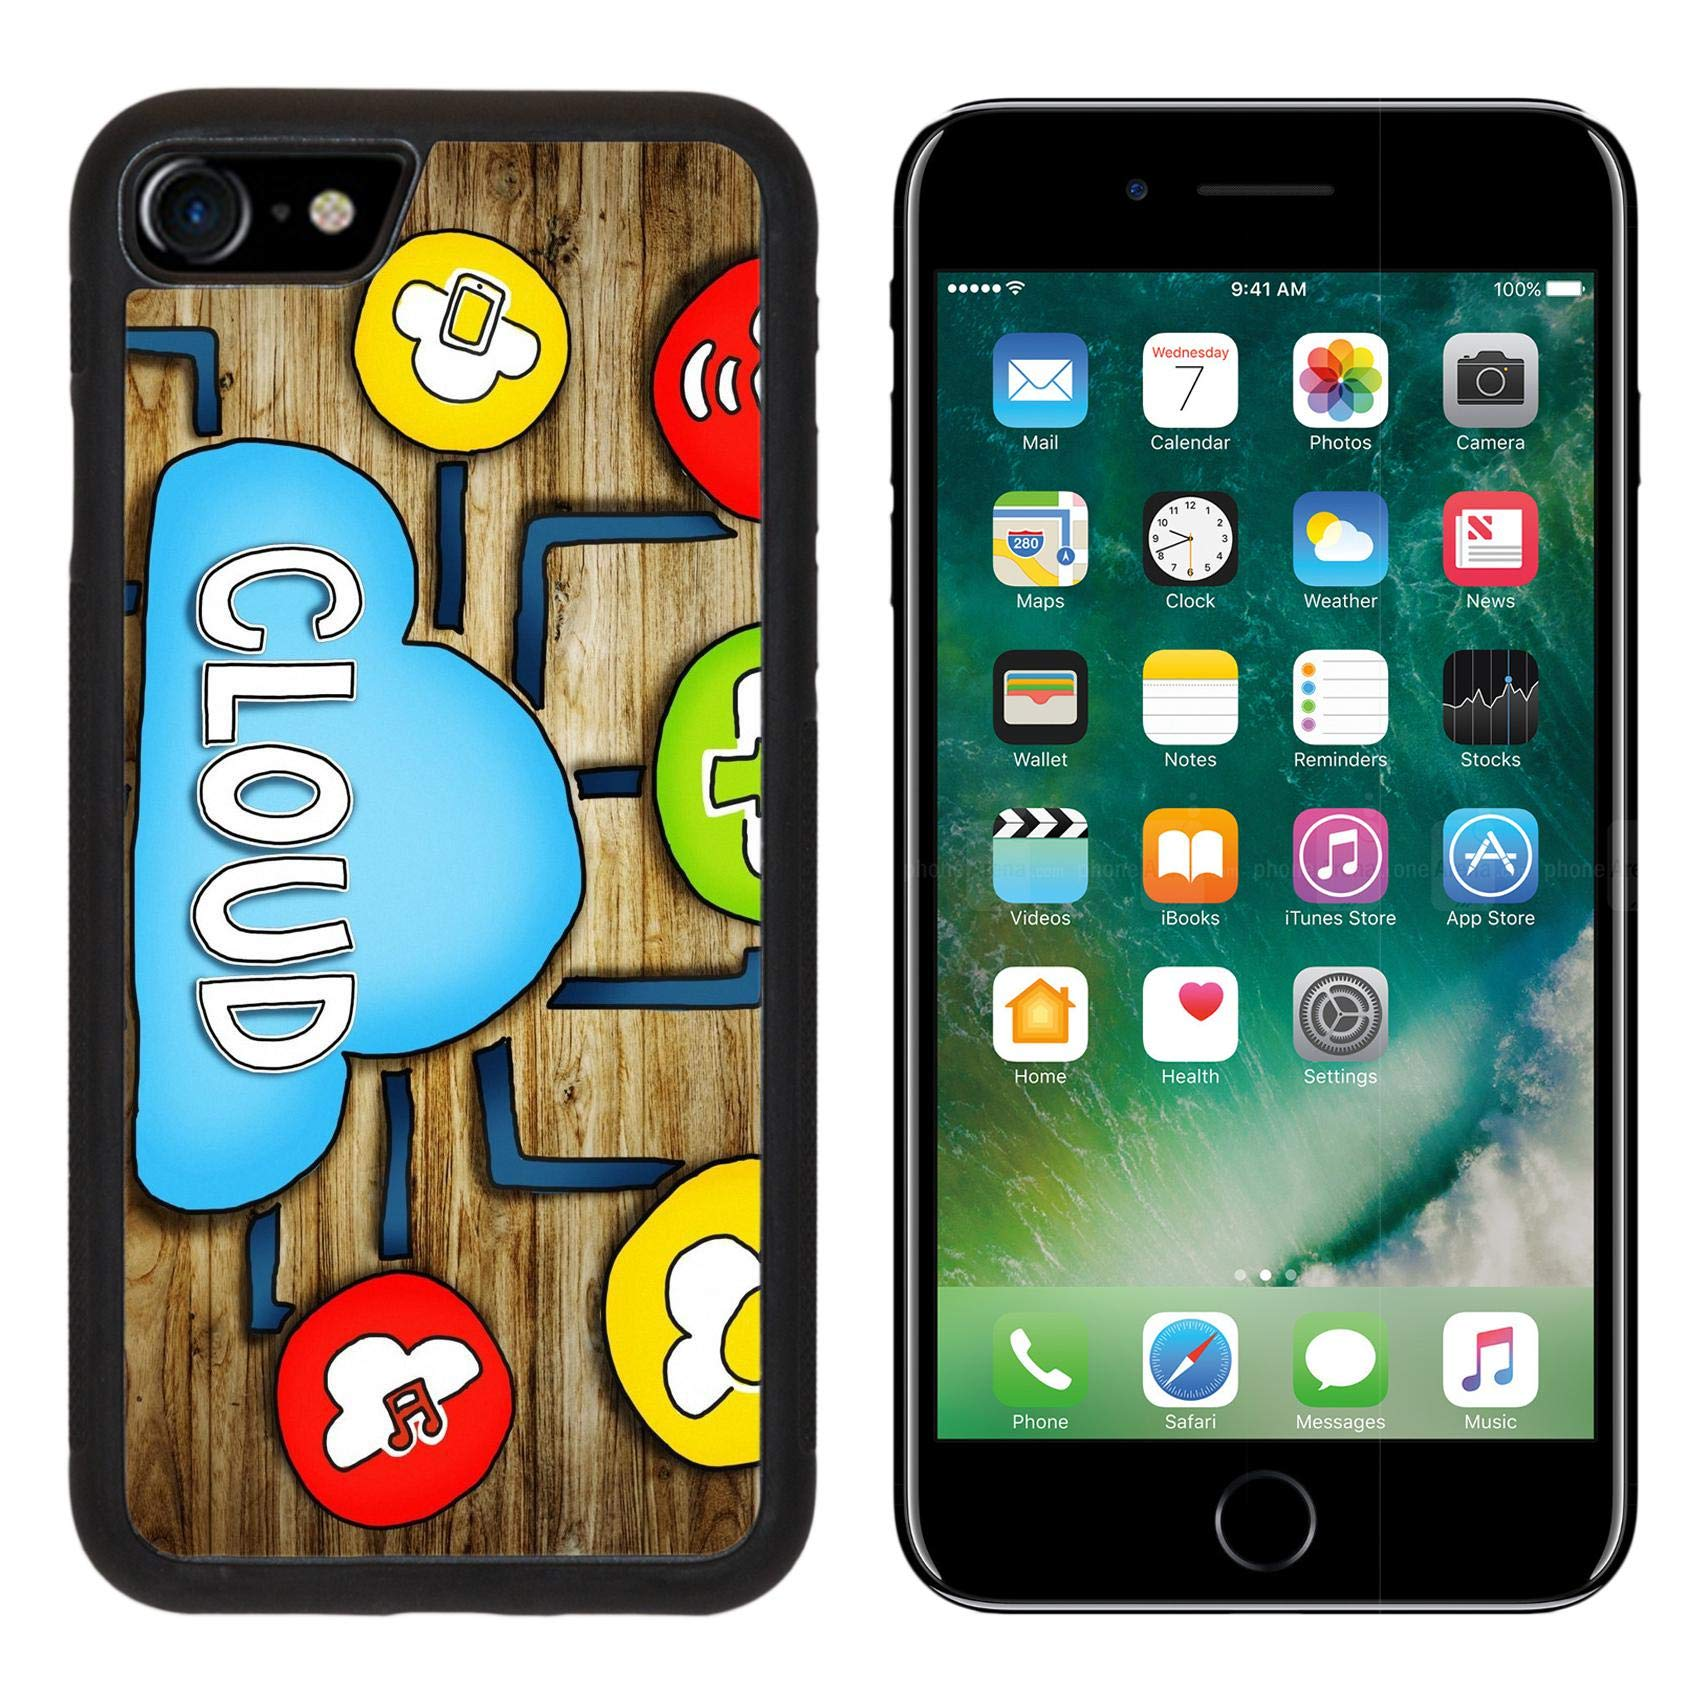 Luxlady iPhone 7 Case and iPhone 8 Case TPU Silicone Bumper Shockproof Anti-Scratch Resistant Hard Tempered Glass Cover IMAGE ID: 34402076 Aerial View of People and Cloud Computing Concepts by Luxlady